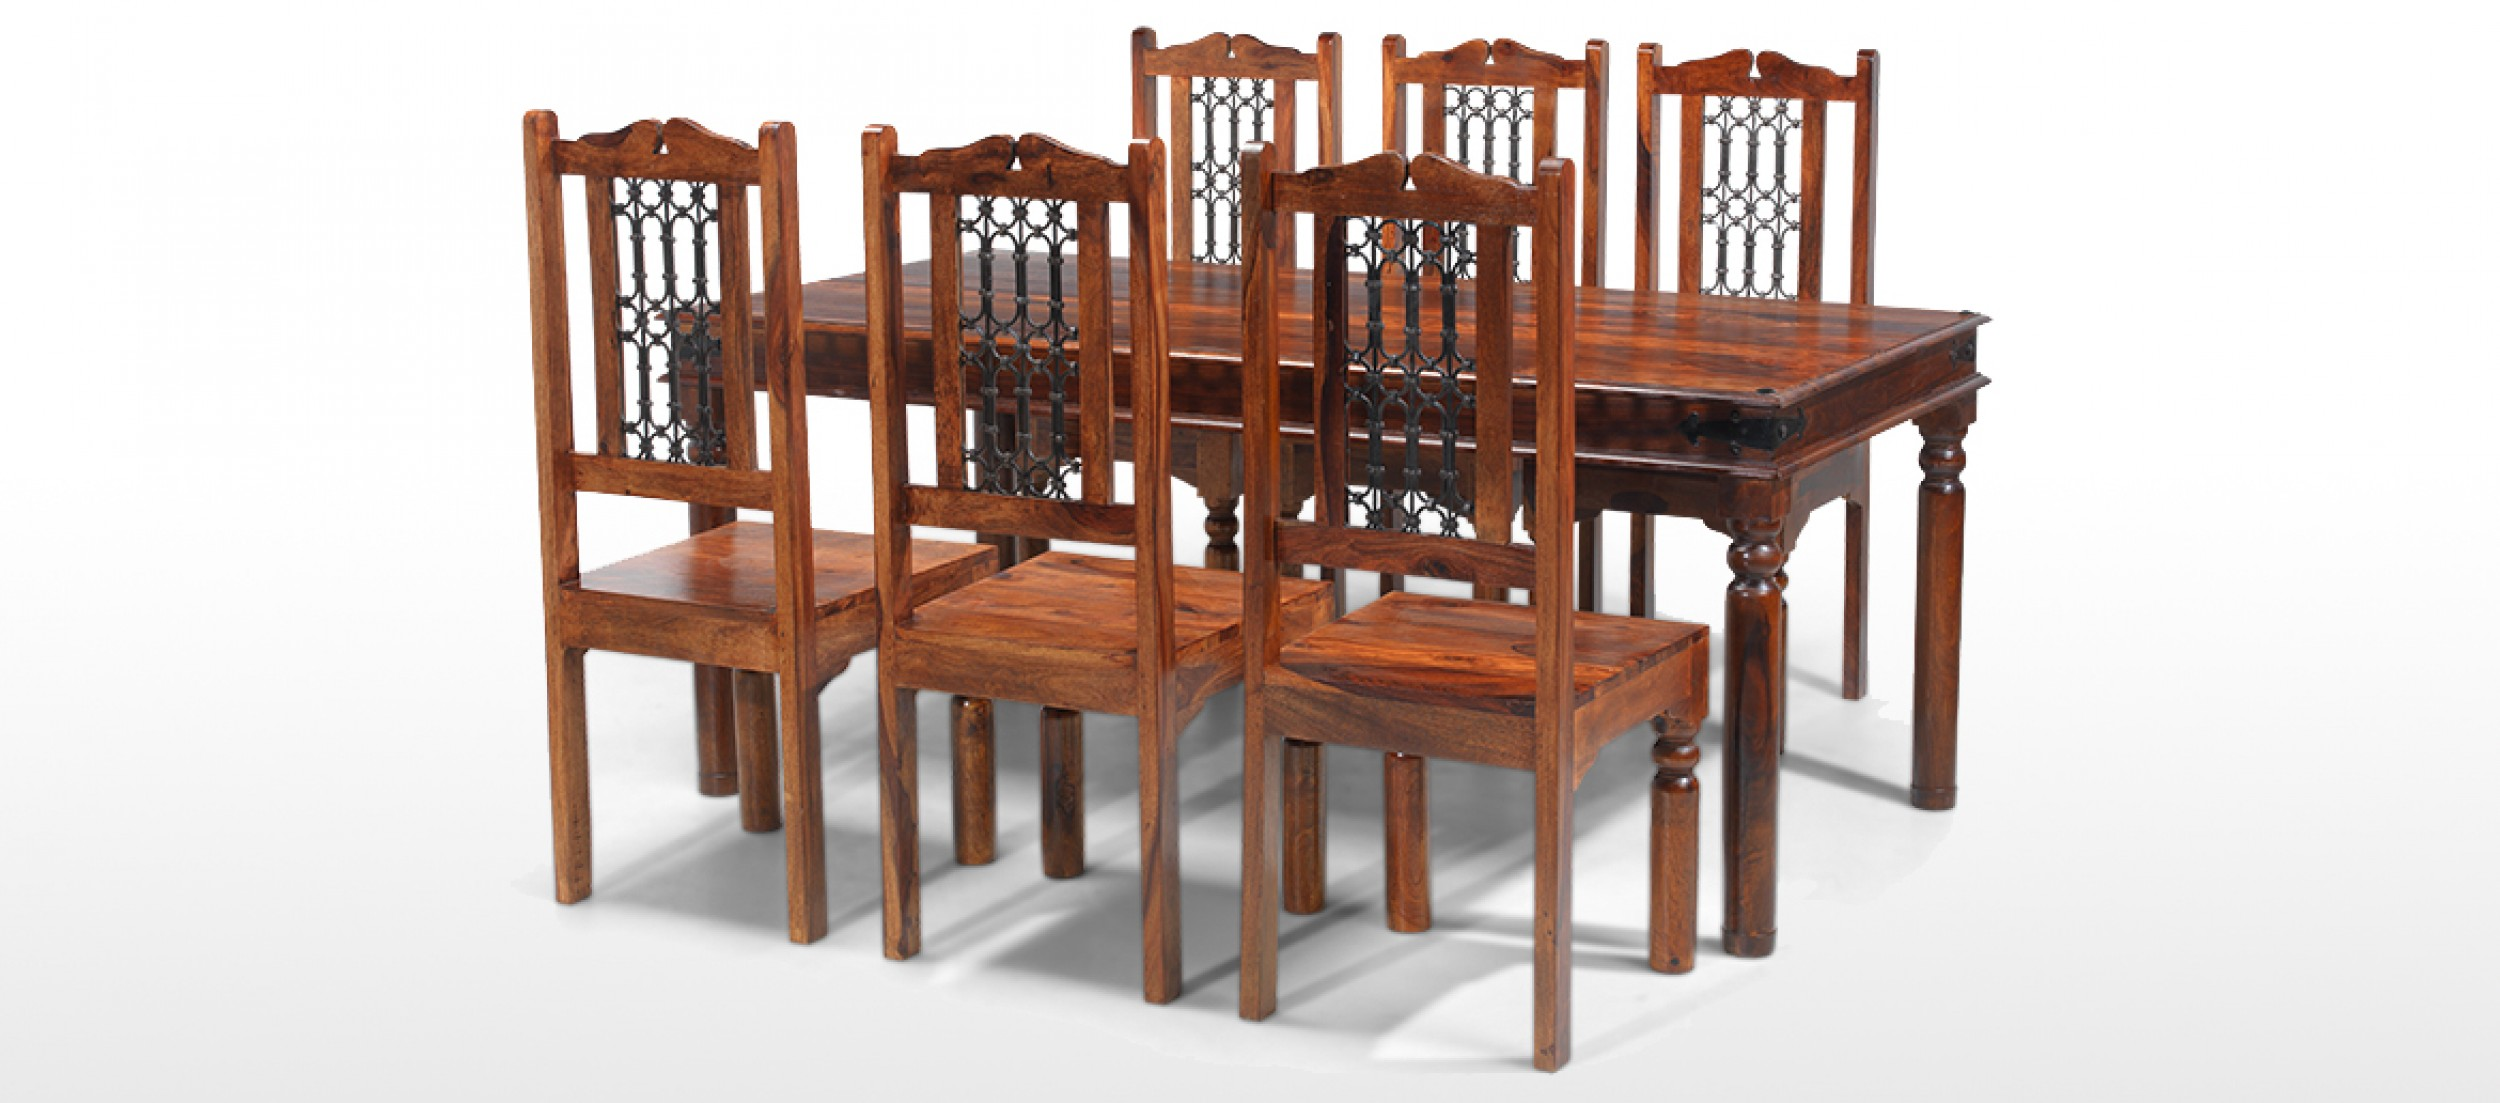 Jali sheesham 180 cm thakat dining table and 6 chairs for Dining table and 6 chairs